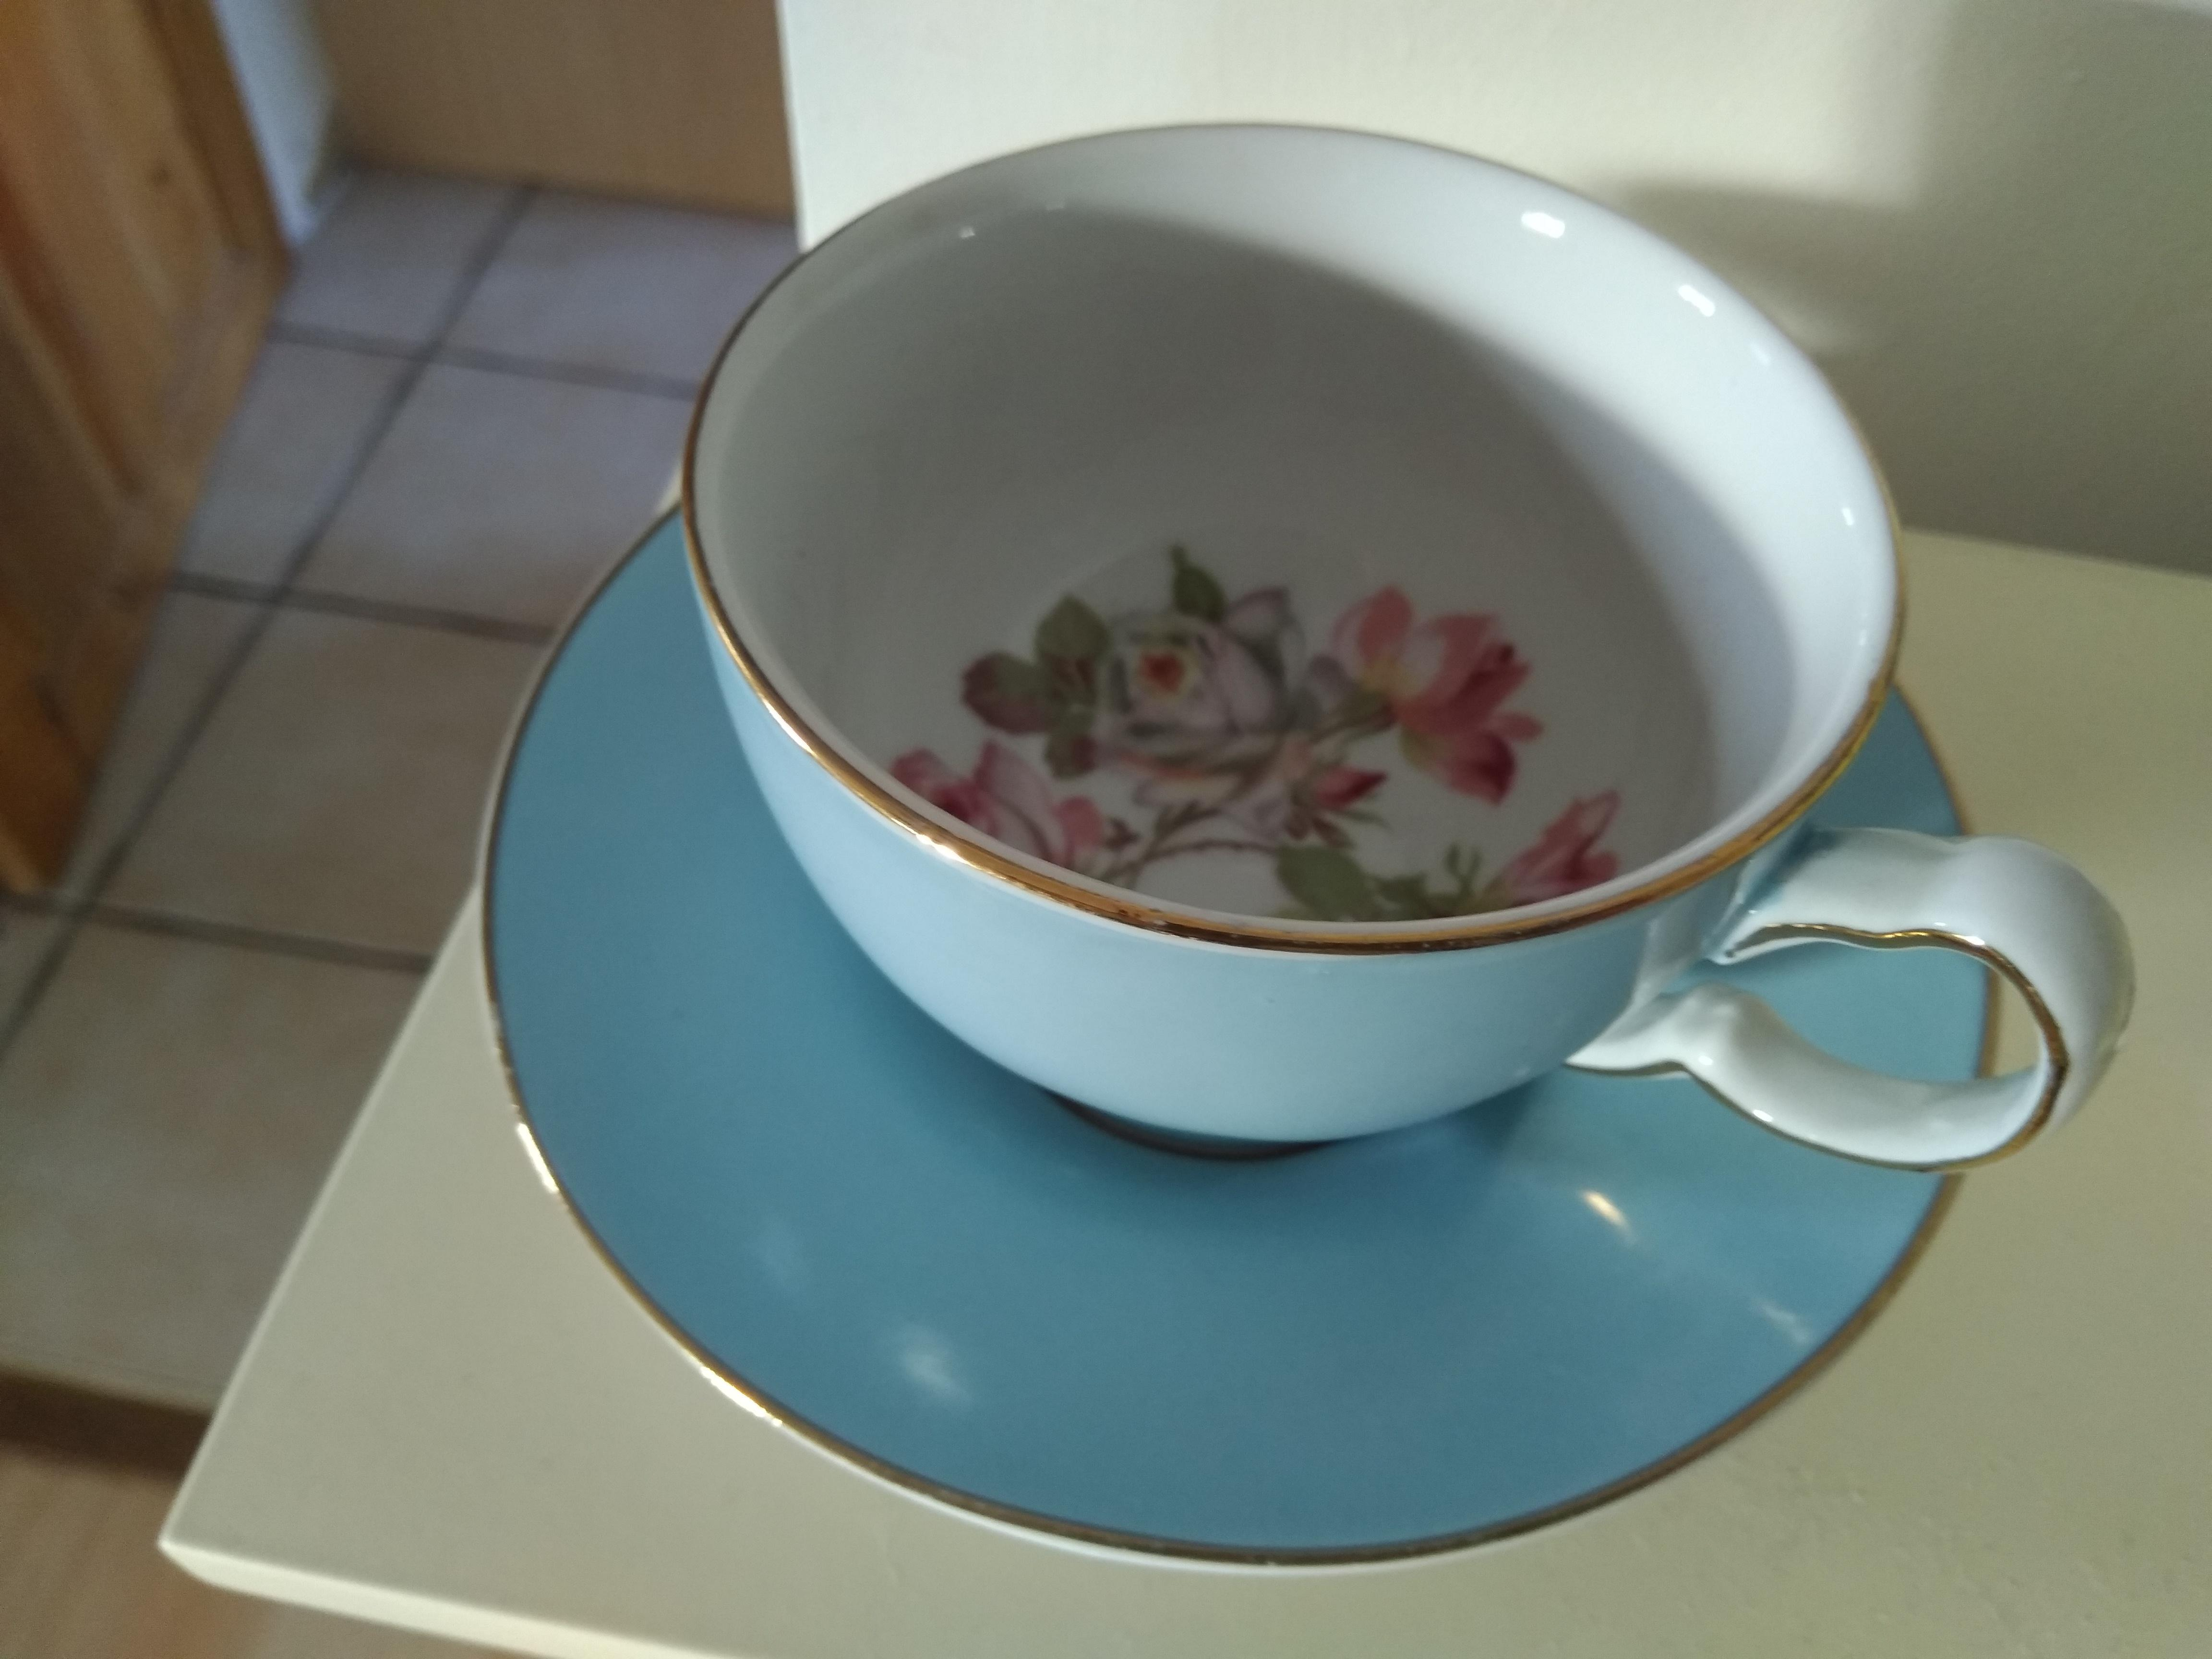 LG Cup and Saucer